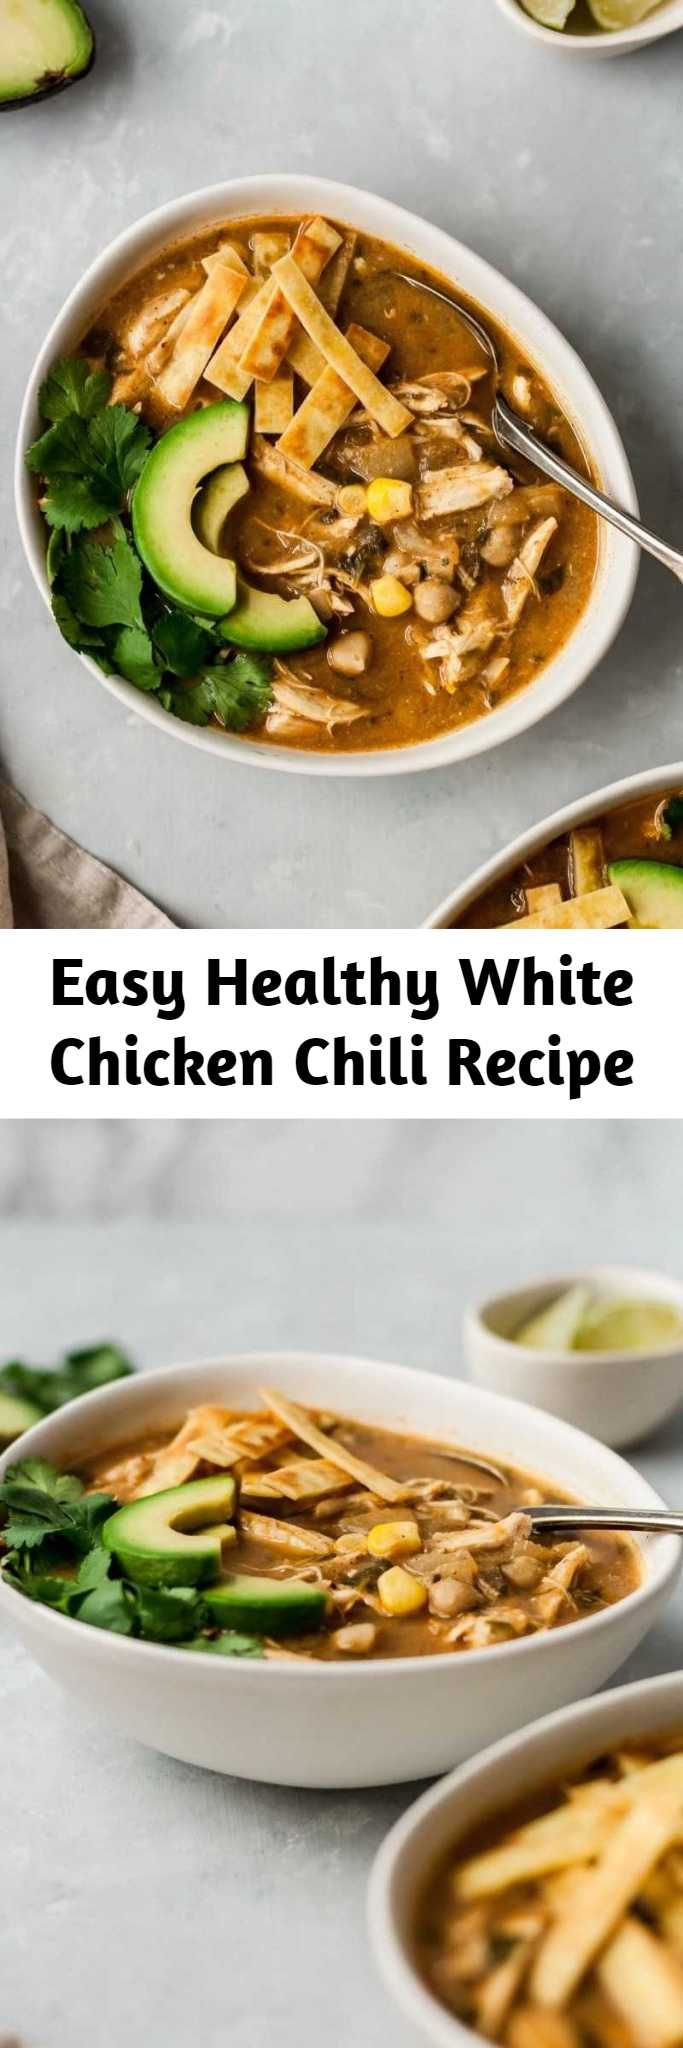 Easy Healthy White Chicken Chili Recipe - Healthy white chicken chili that's nice and creamy, yet there's no cream! Made with green chile, chicken, corn and blended chickpeas to make it thick and creamy. This easy white chicken chili recipe can even be made in the slow cooker and is bound to become a new family favorite. Serve with avocado, tortilla chips and cilantro.